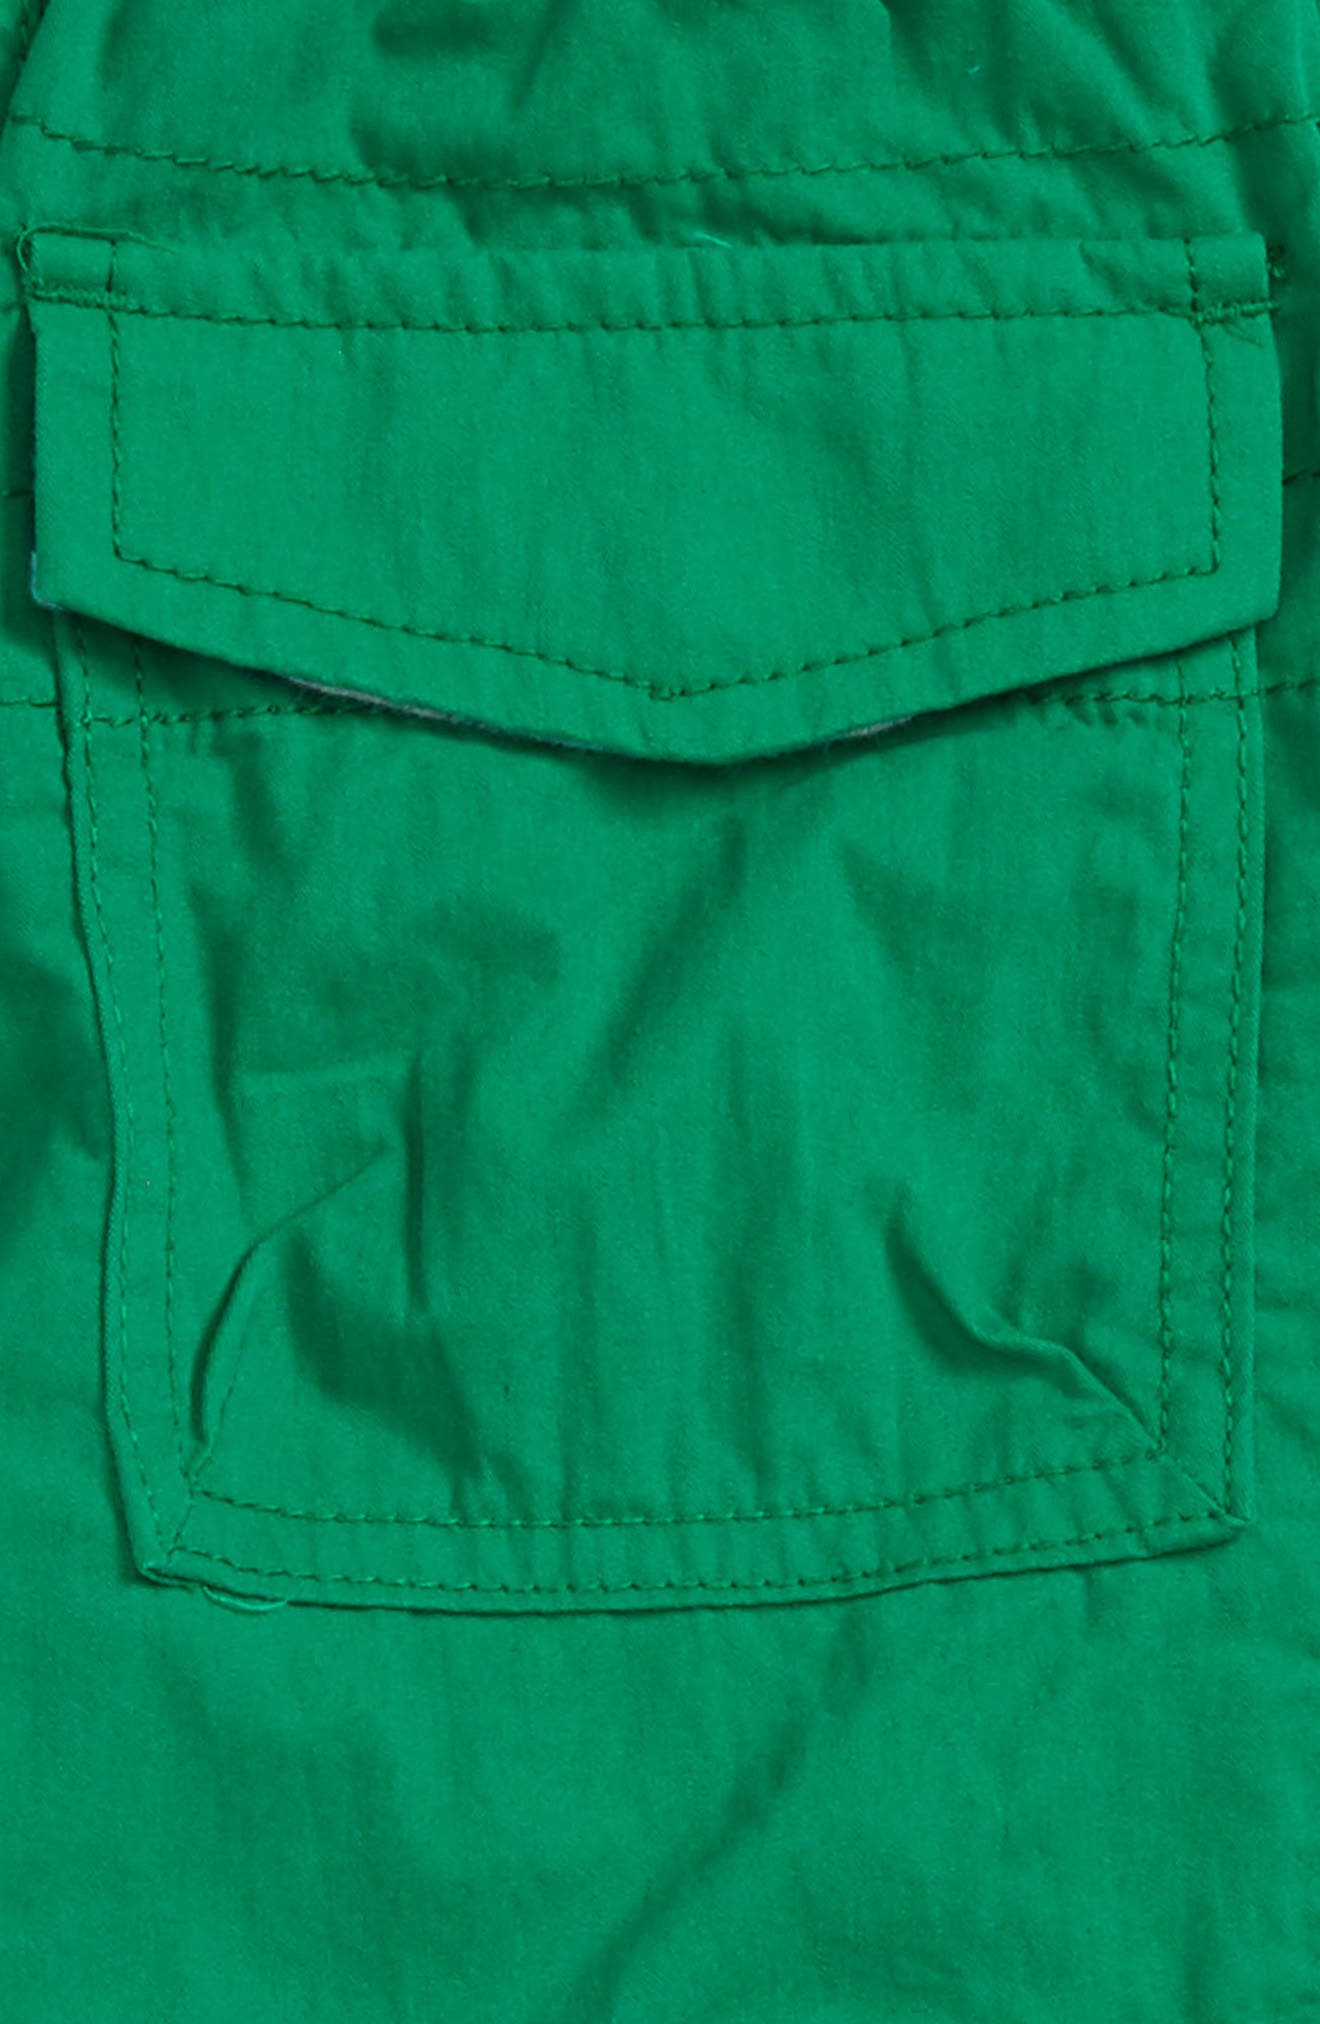 Lined Cargo Pants,                             Alternate thumbnail 3, color,                             315